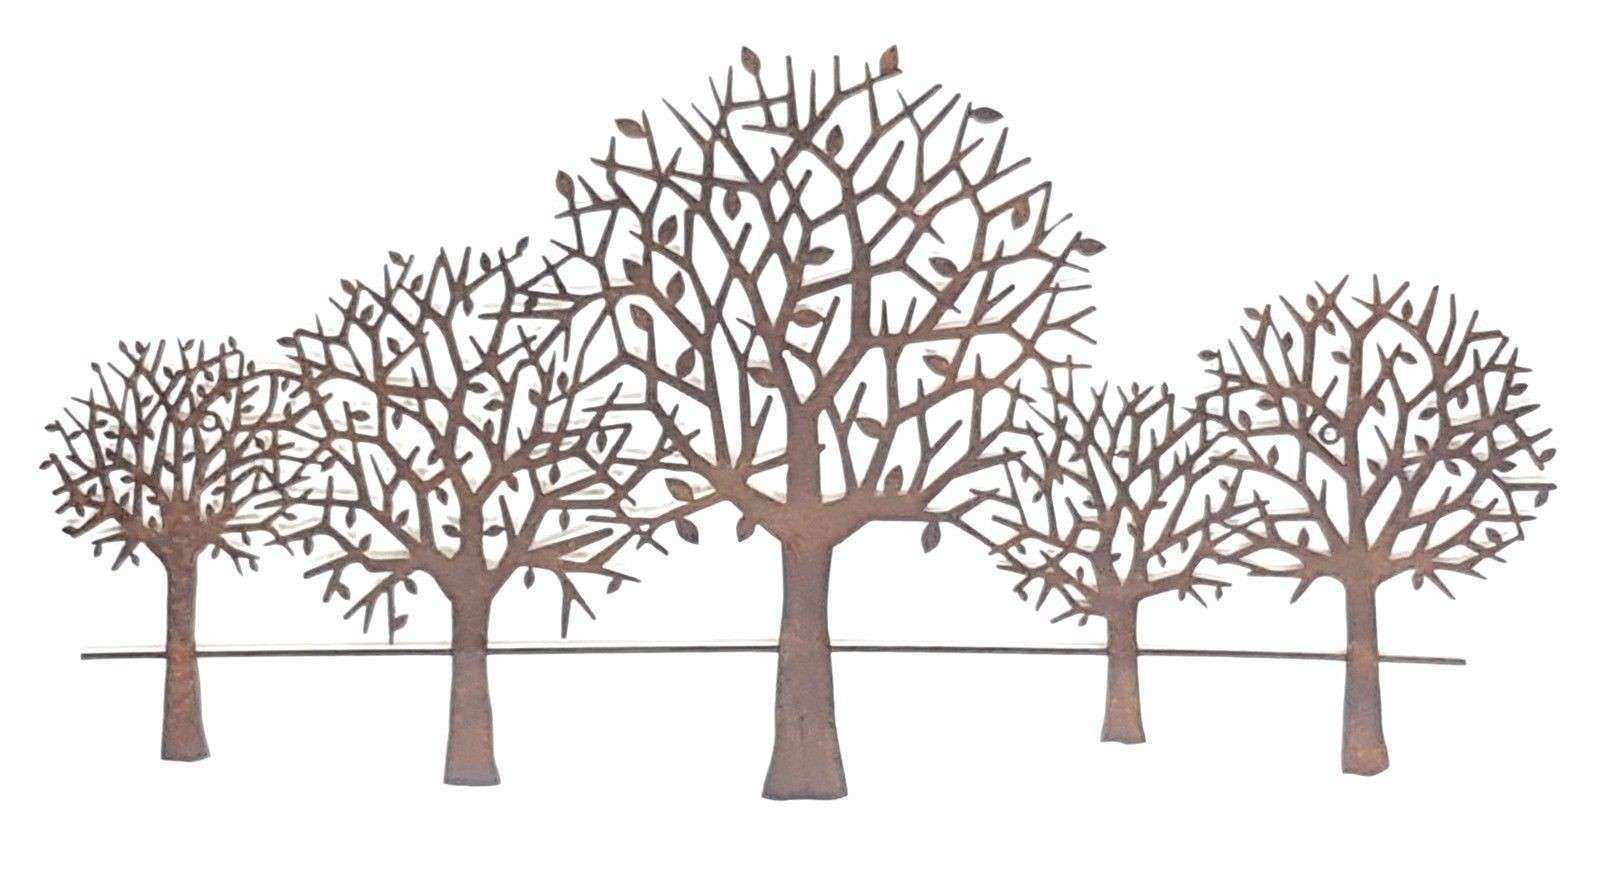 Wall Art Designs Metal Wall Art Trees Wall Art Metal Tree Scenery Metal Hanging Wall Art Rusty